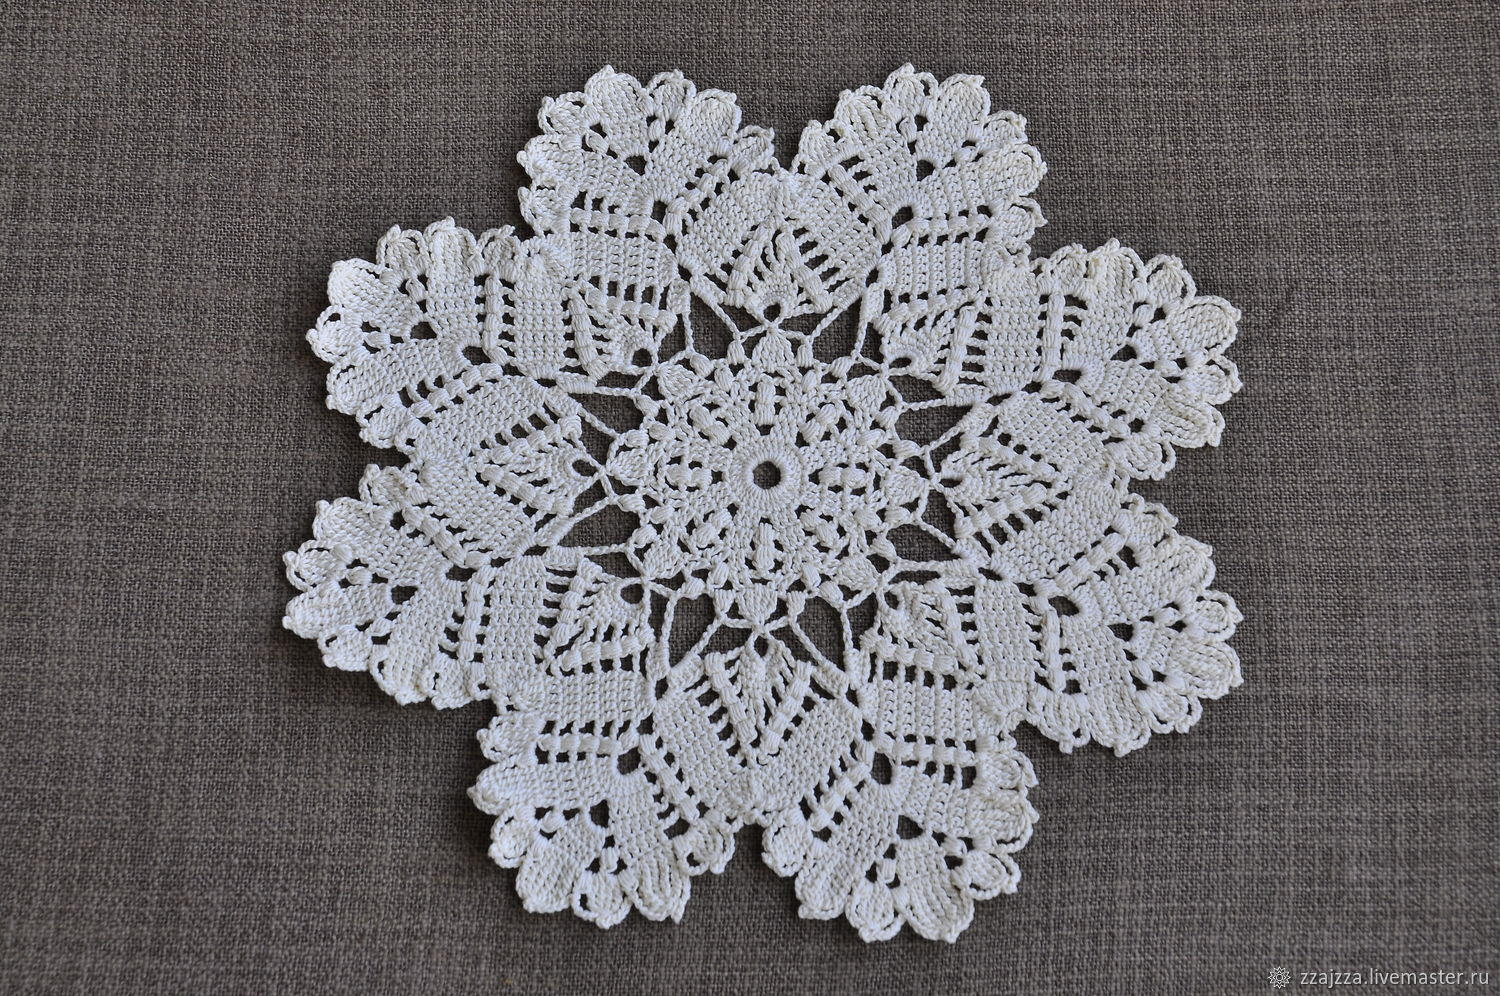 Crochet Doily Snowflake Shop Online On Livemaster With Shipping